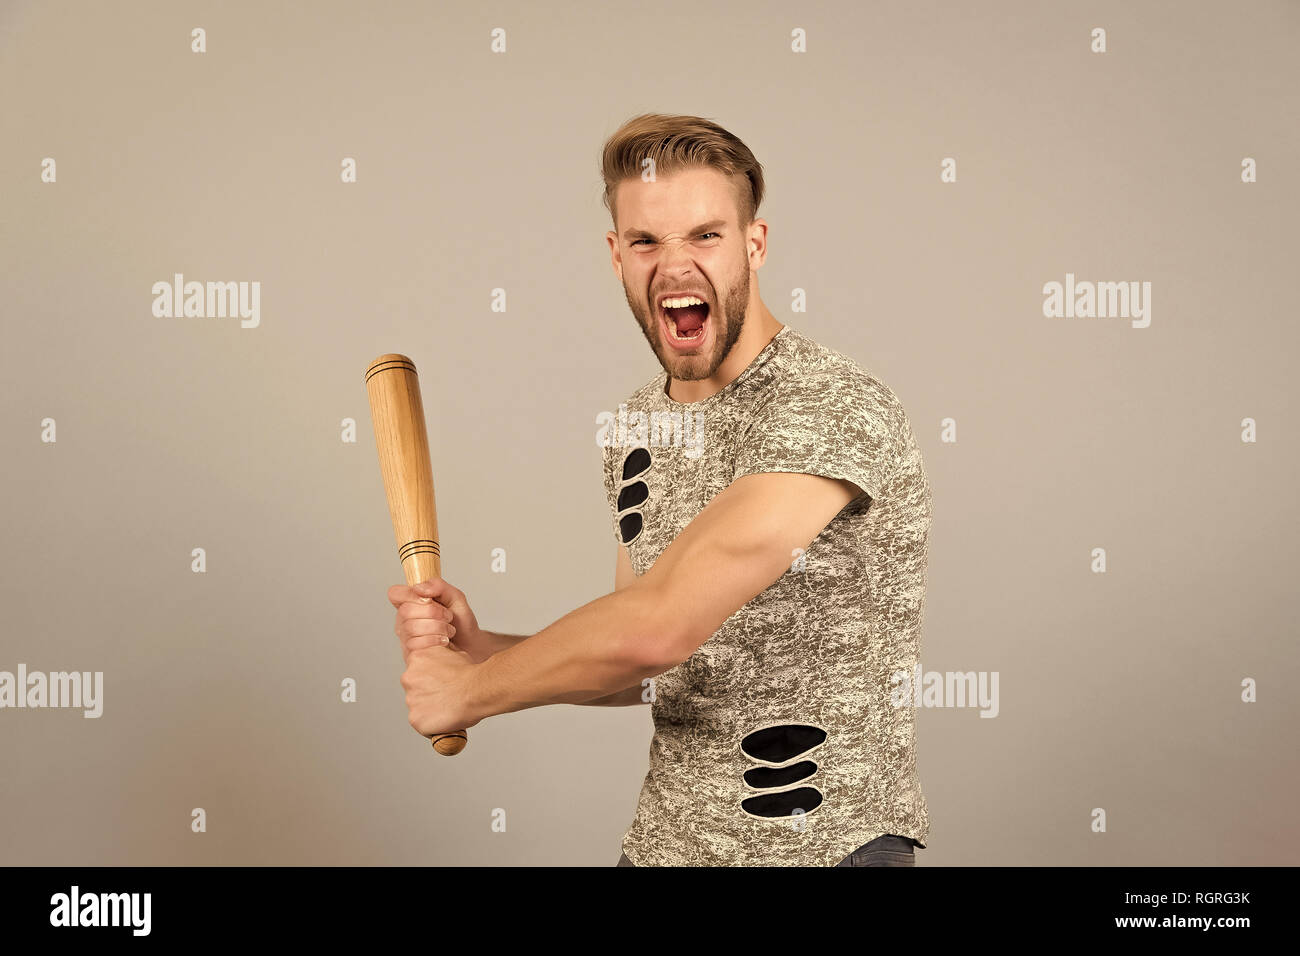 Bully man shouting aggressive face, grey background. Man with wooden bat ready to attack. Aggressive behaviour concept. Man bearded looks aggressive and threatening. Dangerous behaviour of hooligan. - Stock Image